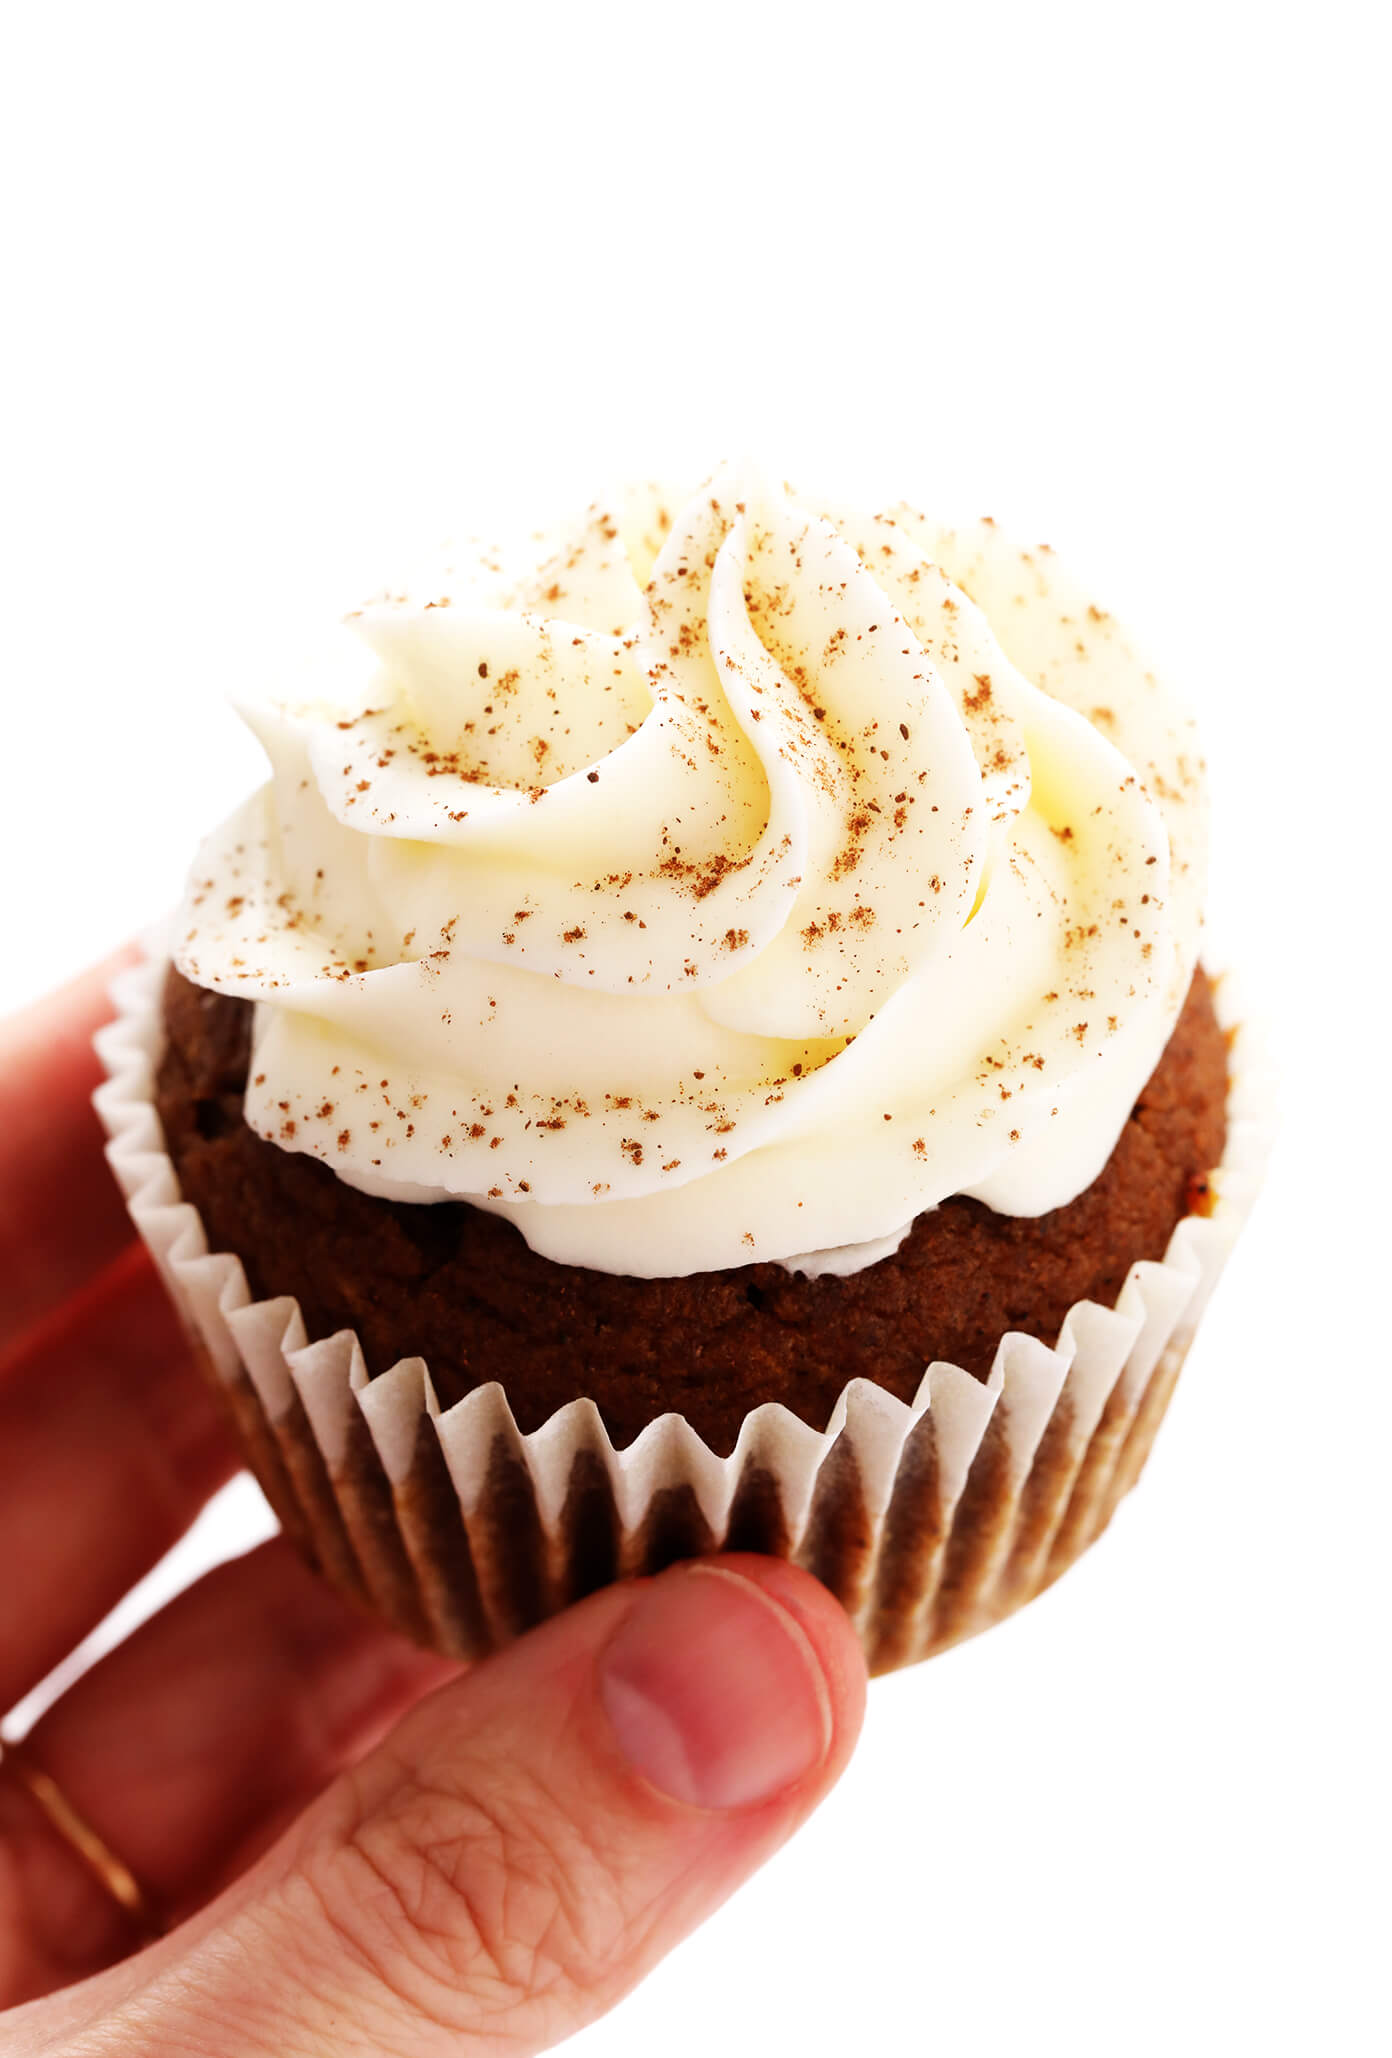 Holding a Pumpkin Cupcake with Cream Cheese Frosting